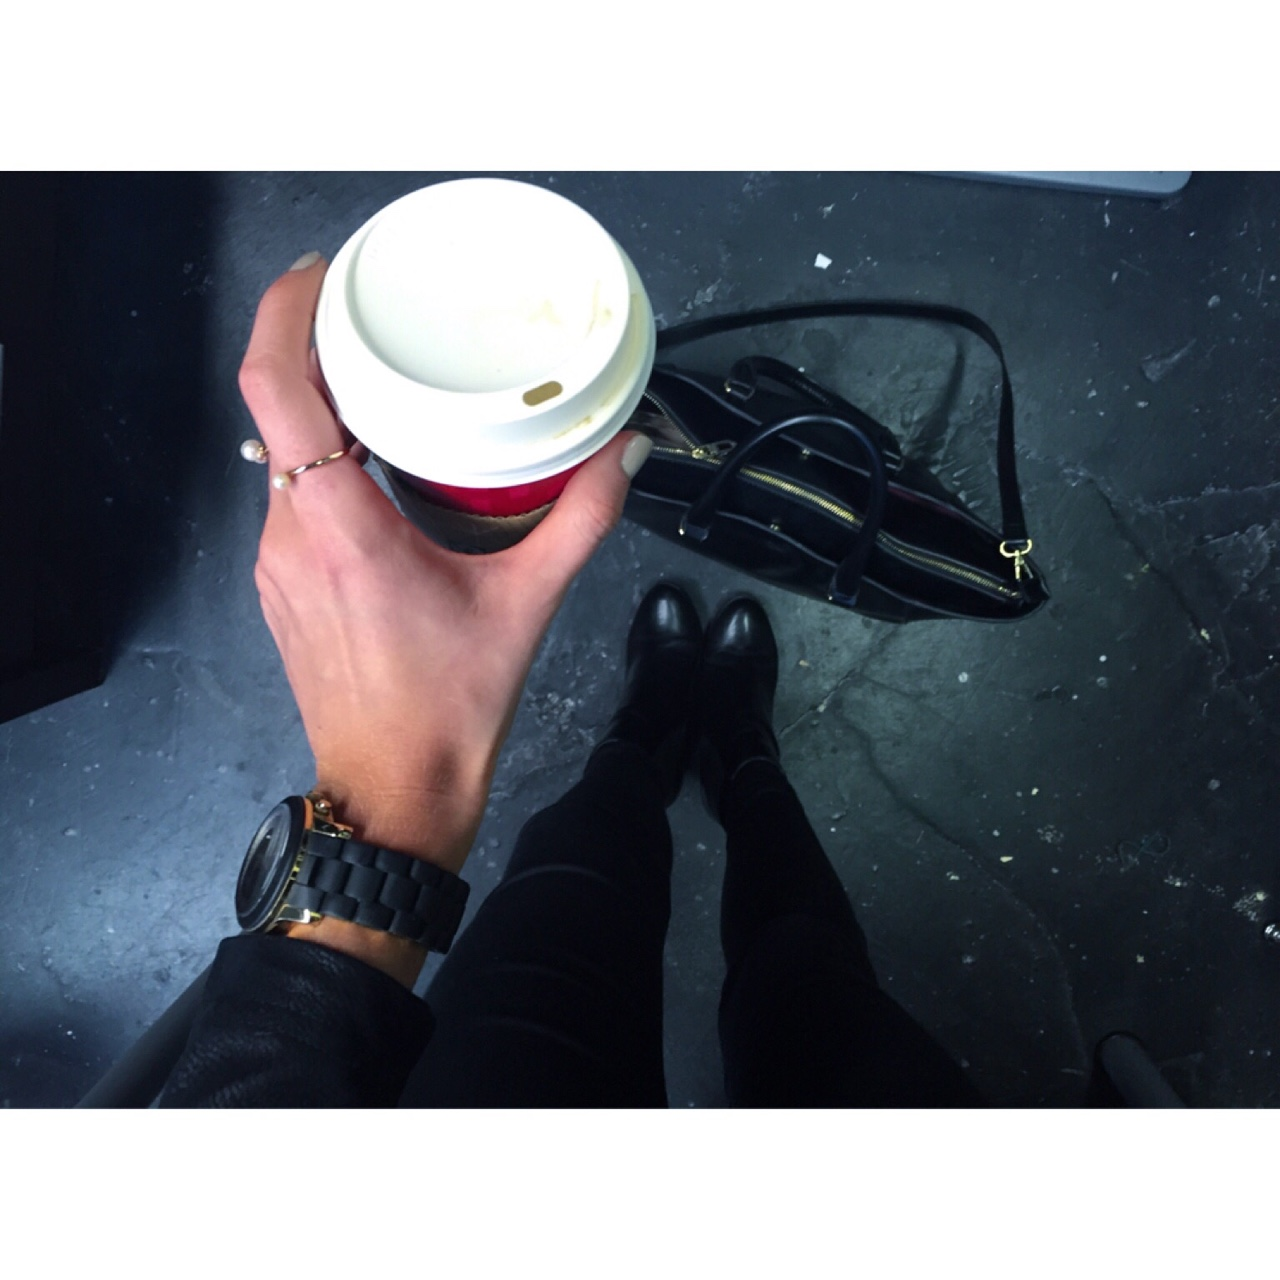 Red Cup Season Red Cups for Christmas @ Starbucks- Skinng Caramel Latte. Black Matte & Gold Michael Kors Watch with little Pearl Rings from H&M. //SHE